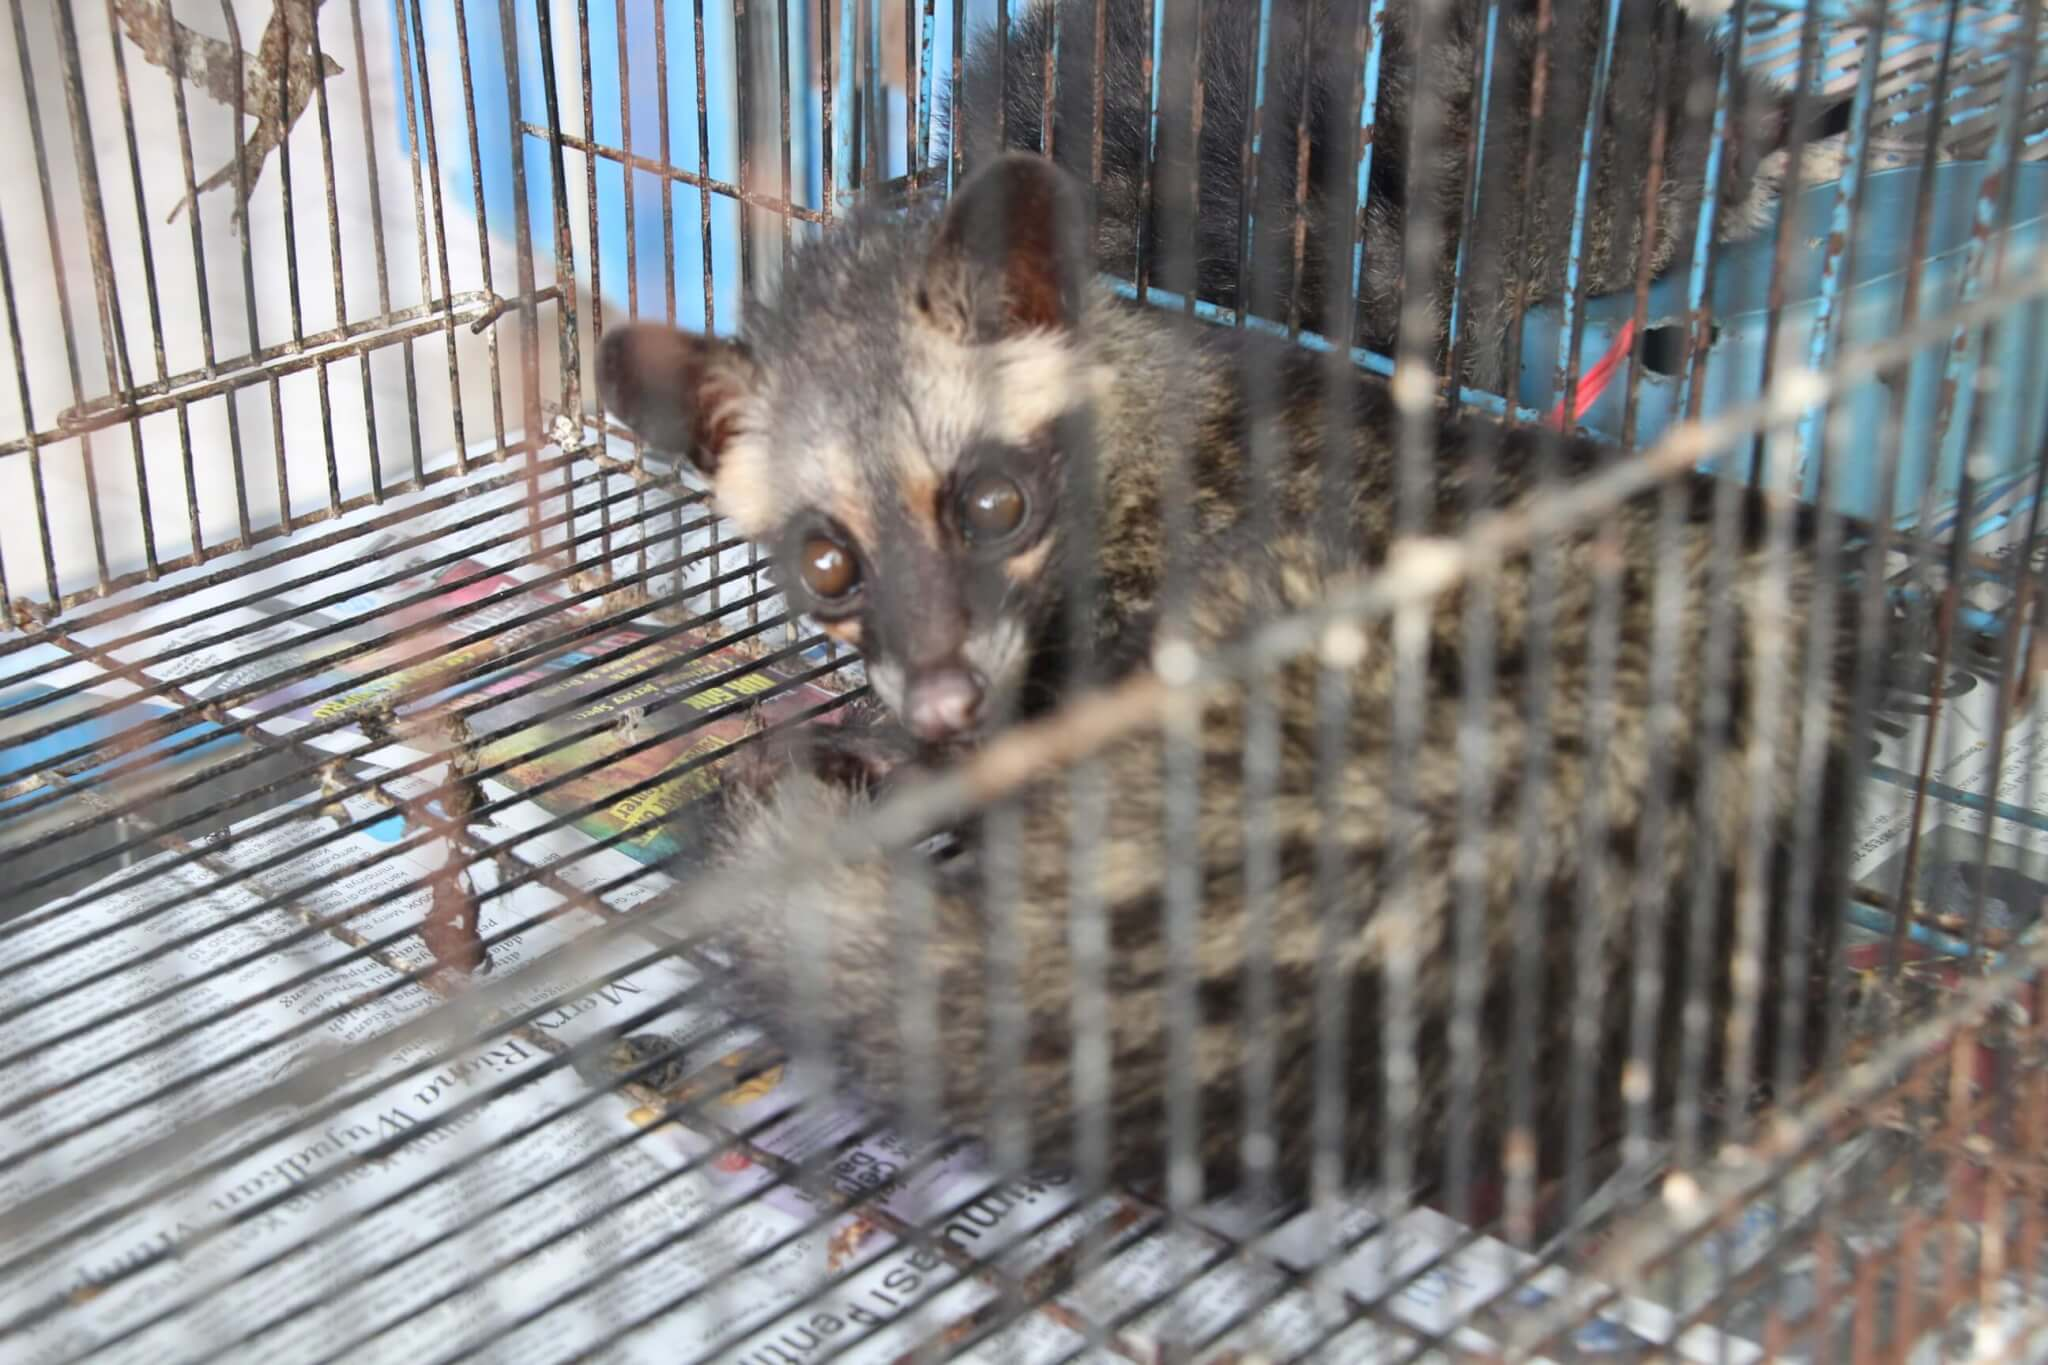 Kopi luwak is made from the beans of coffee berries that have been eaten and excreted by civets.